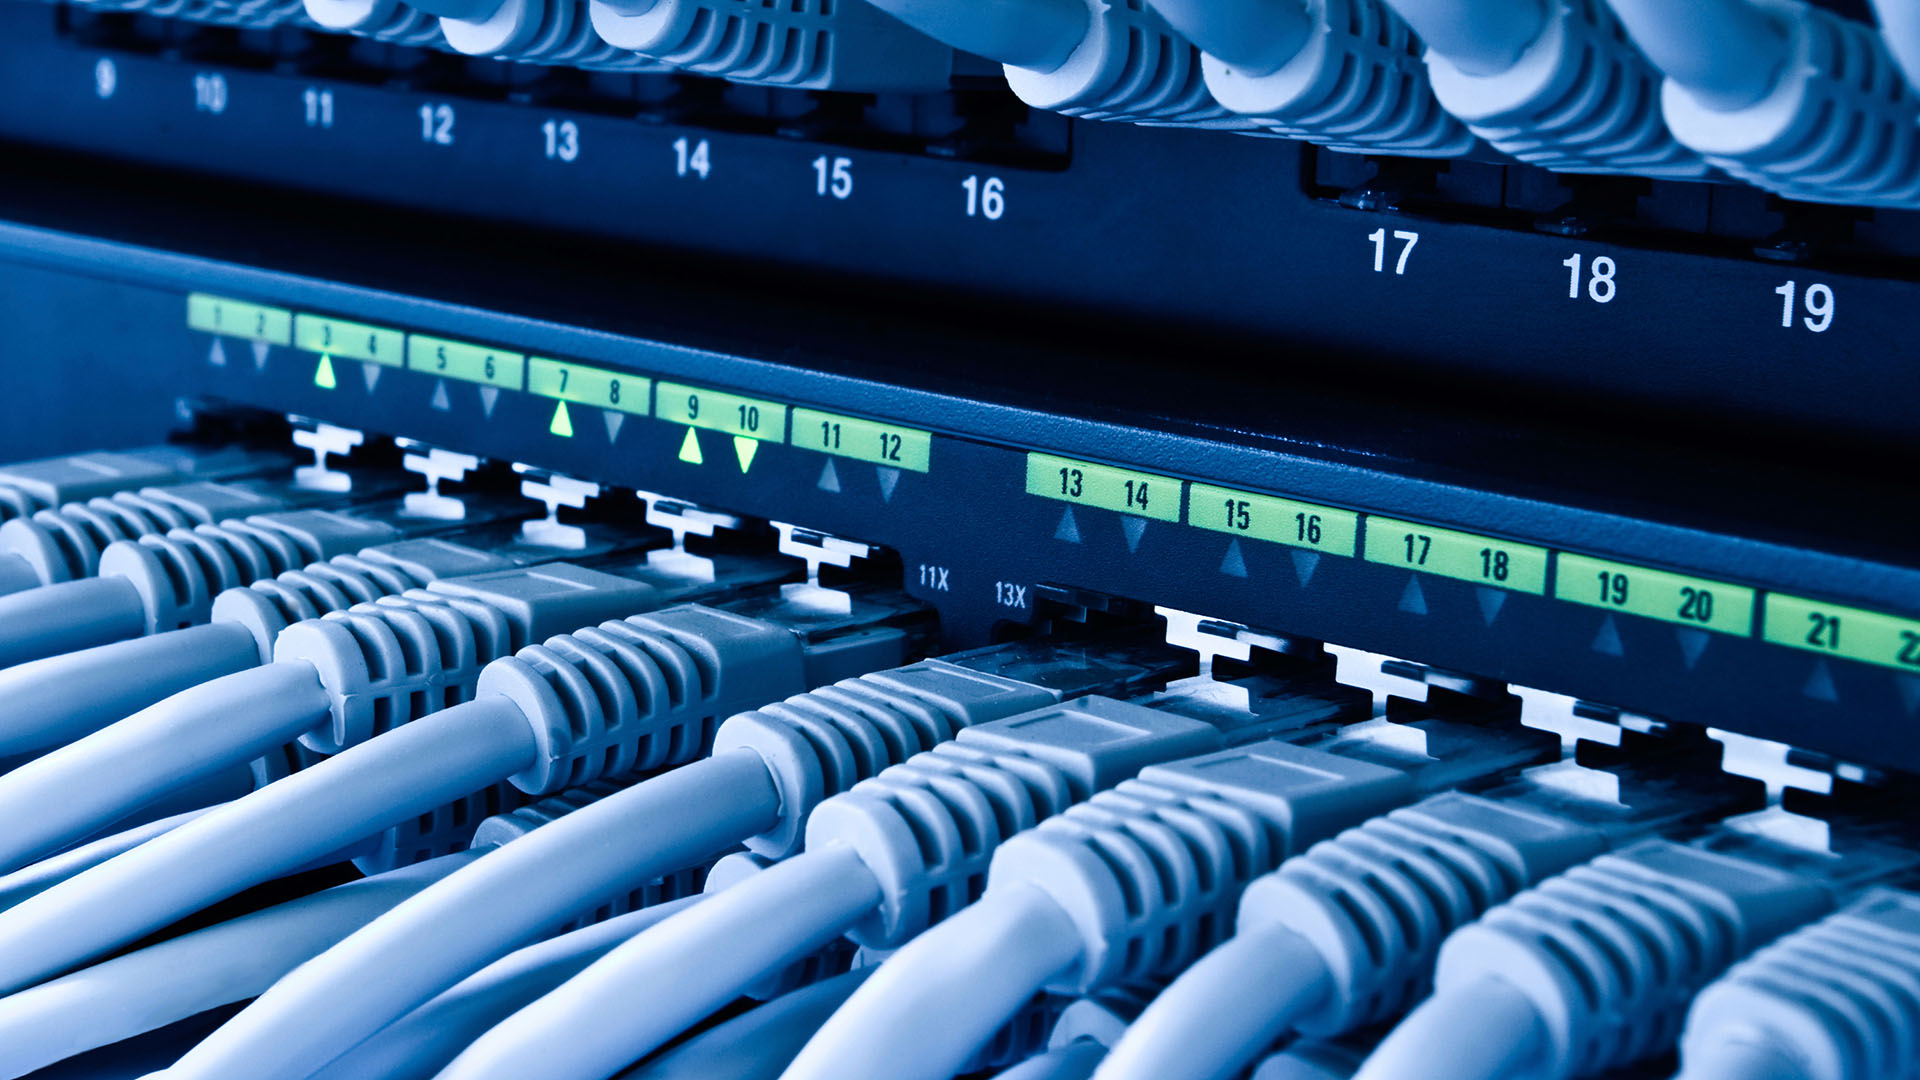 Hialeah Florida Superior Voice & Data Network Cabling Solutions